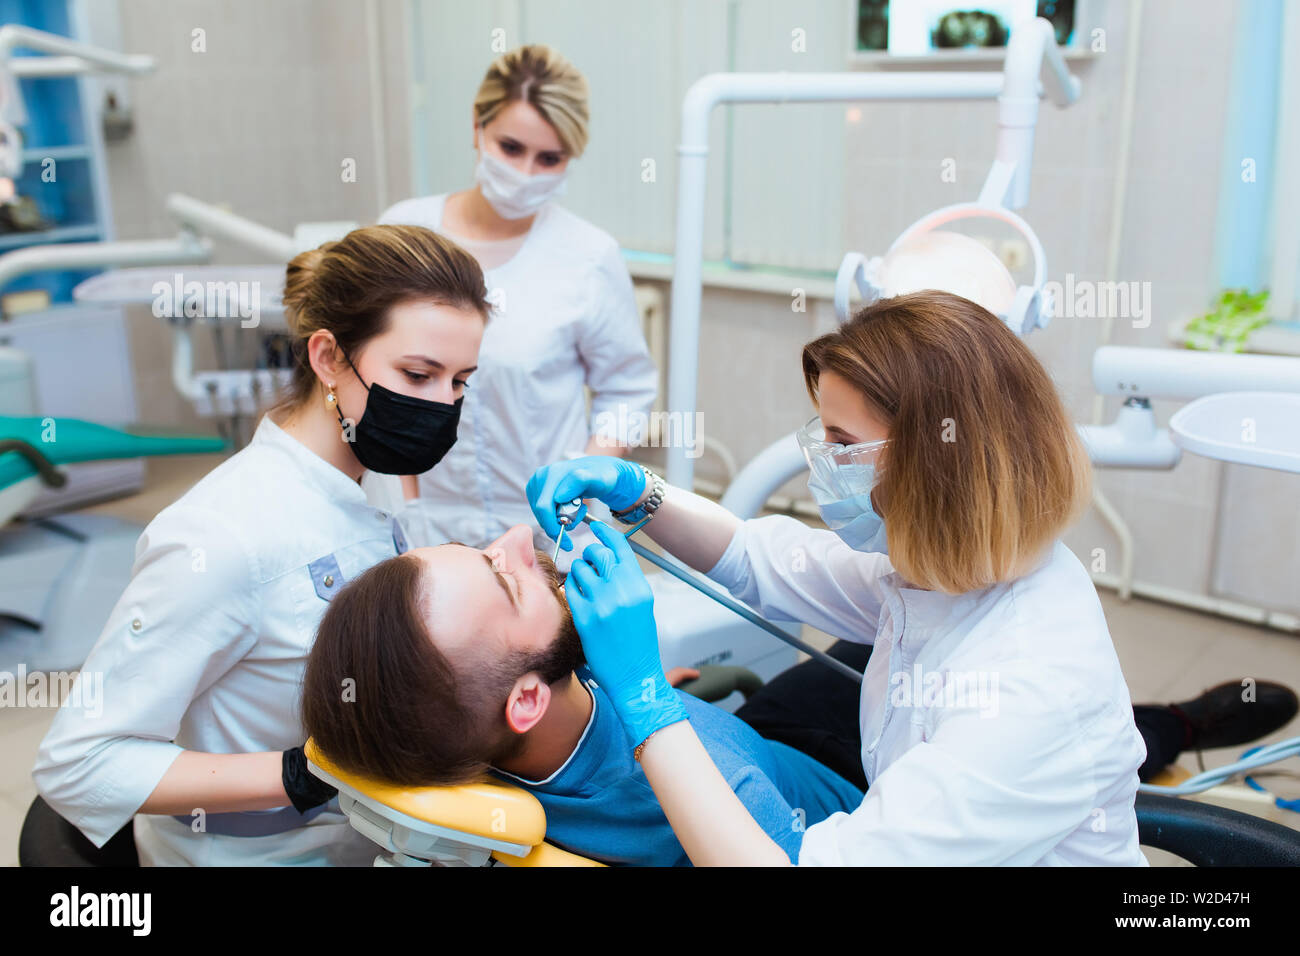 Free Dental Clinic Stock Photos & Free Dental Clinic Stock Images